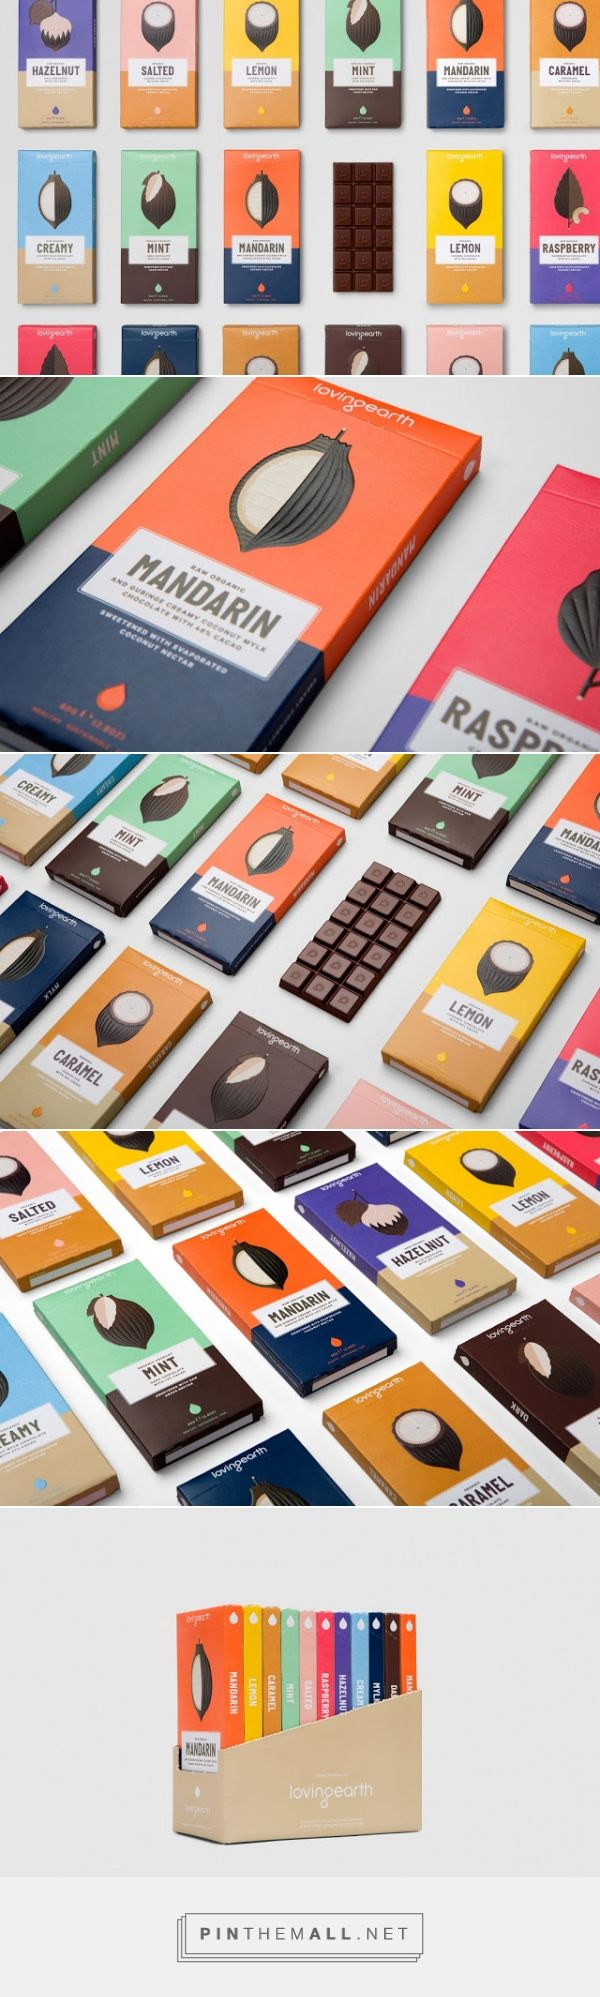 Loving Earth chocolate packaging designed by Round (Australia) - http://www.packagingoftheworld.com/2016/01/loving-earth.html